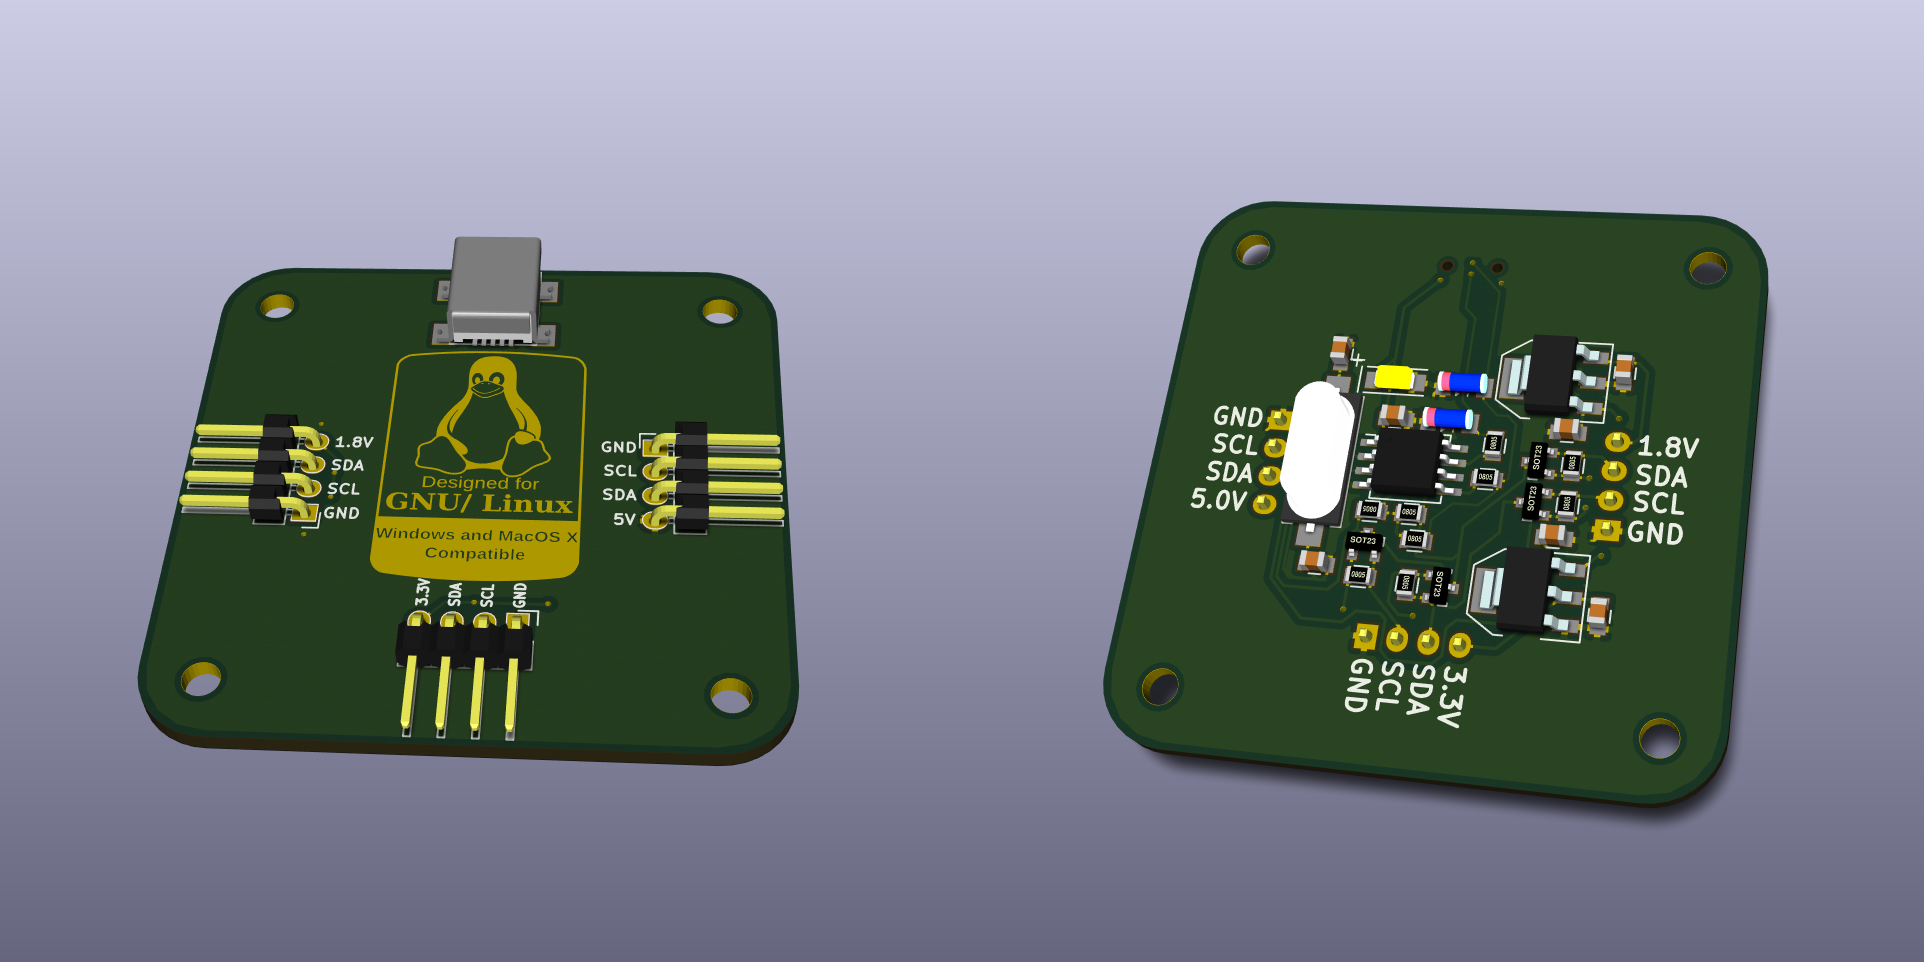 Rendered image of the PCB